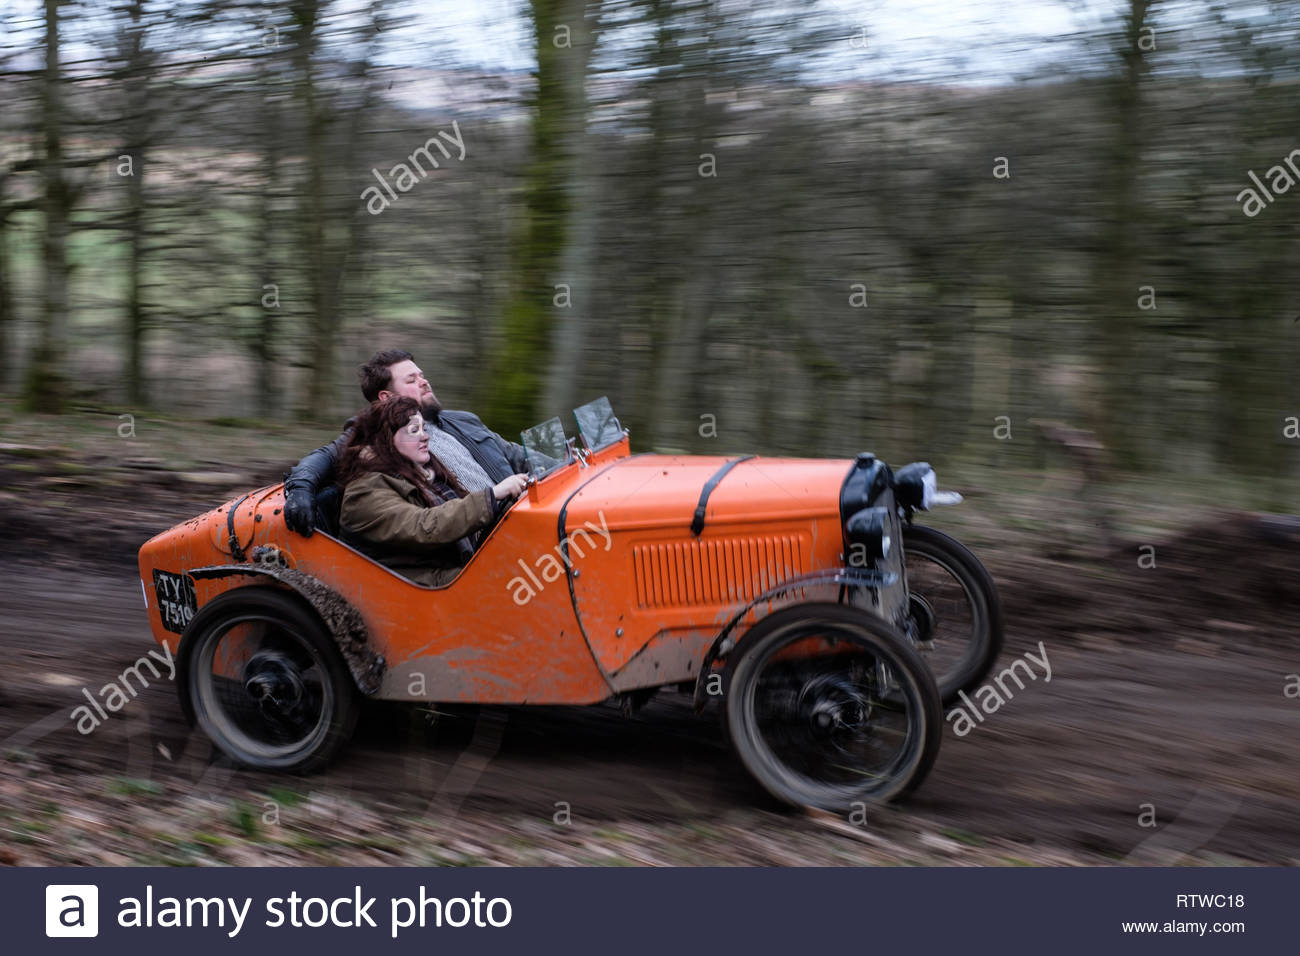 Carlton Lees, Ashover, Derbyshire, UK. 2nd March 2019. The Vintage Sports Car Club (VSCC) held its annual John Harris Trial for vintage pre-war cars in the Derbyshire countryside around Ashover village. One of challenges faced by competitors was on hills at Carlton Lees. In a VSCC Trial competitors score points depending how far they travel up the hill. Competitors must carry passengers who are called 'Bouncers'. Bouncing gives the car more grip and helps it to travel further up the hill. © Gary Clarke/Alamy Live News Stock Photo